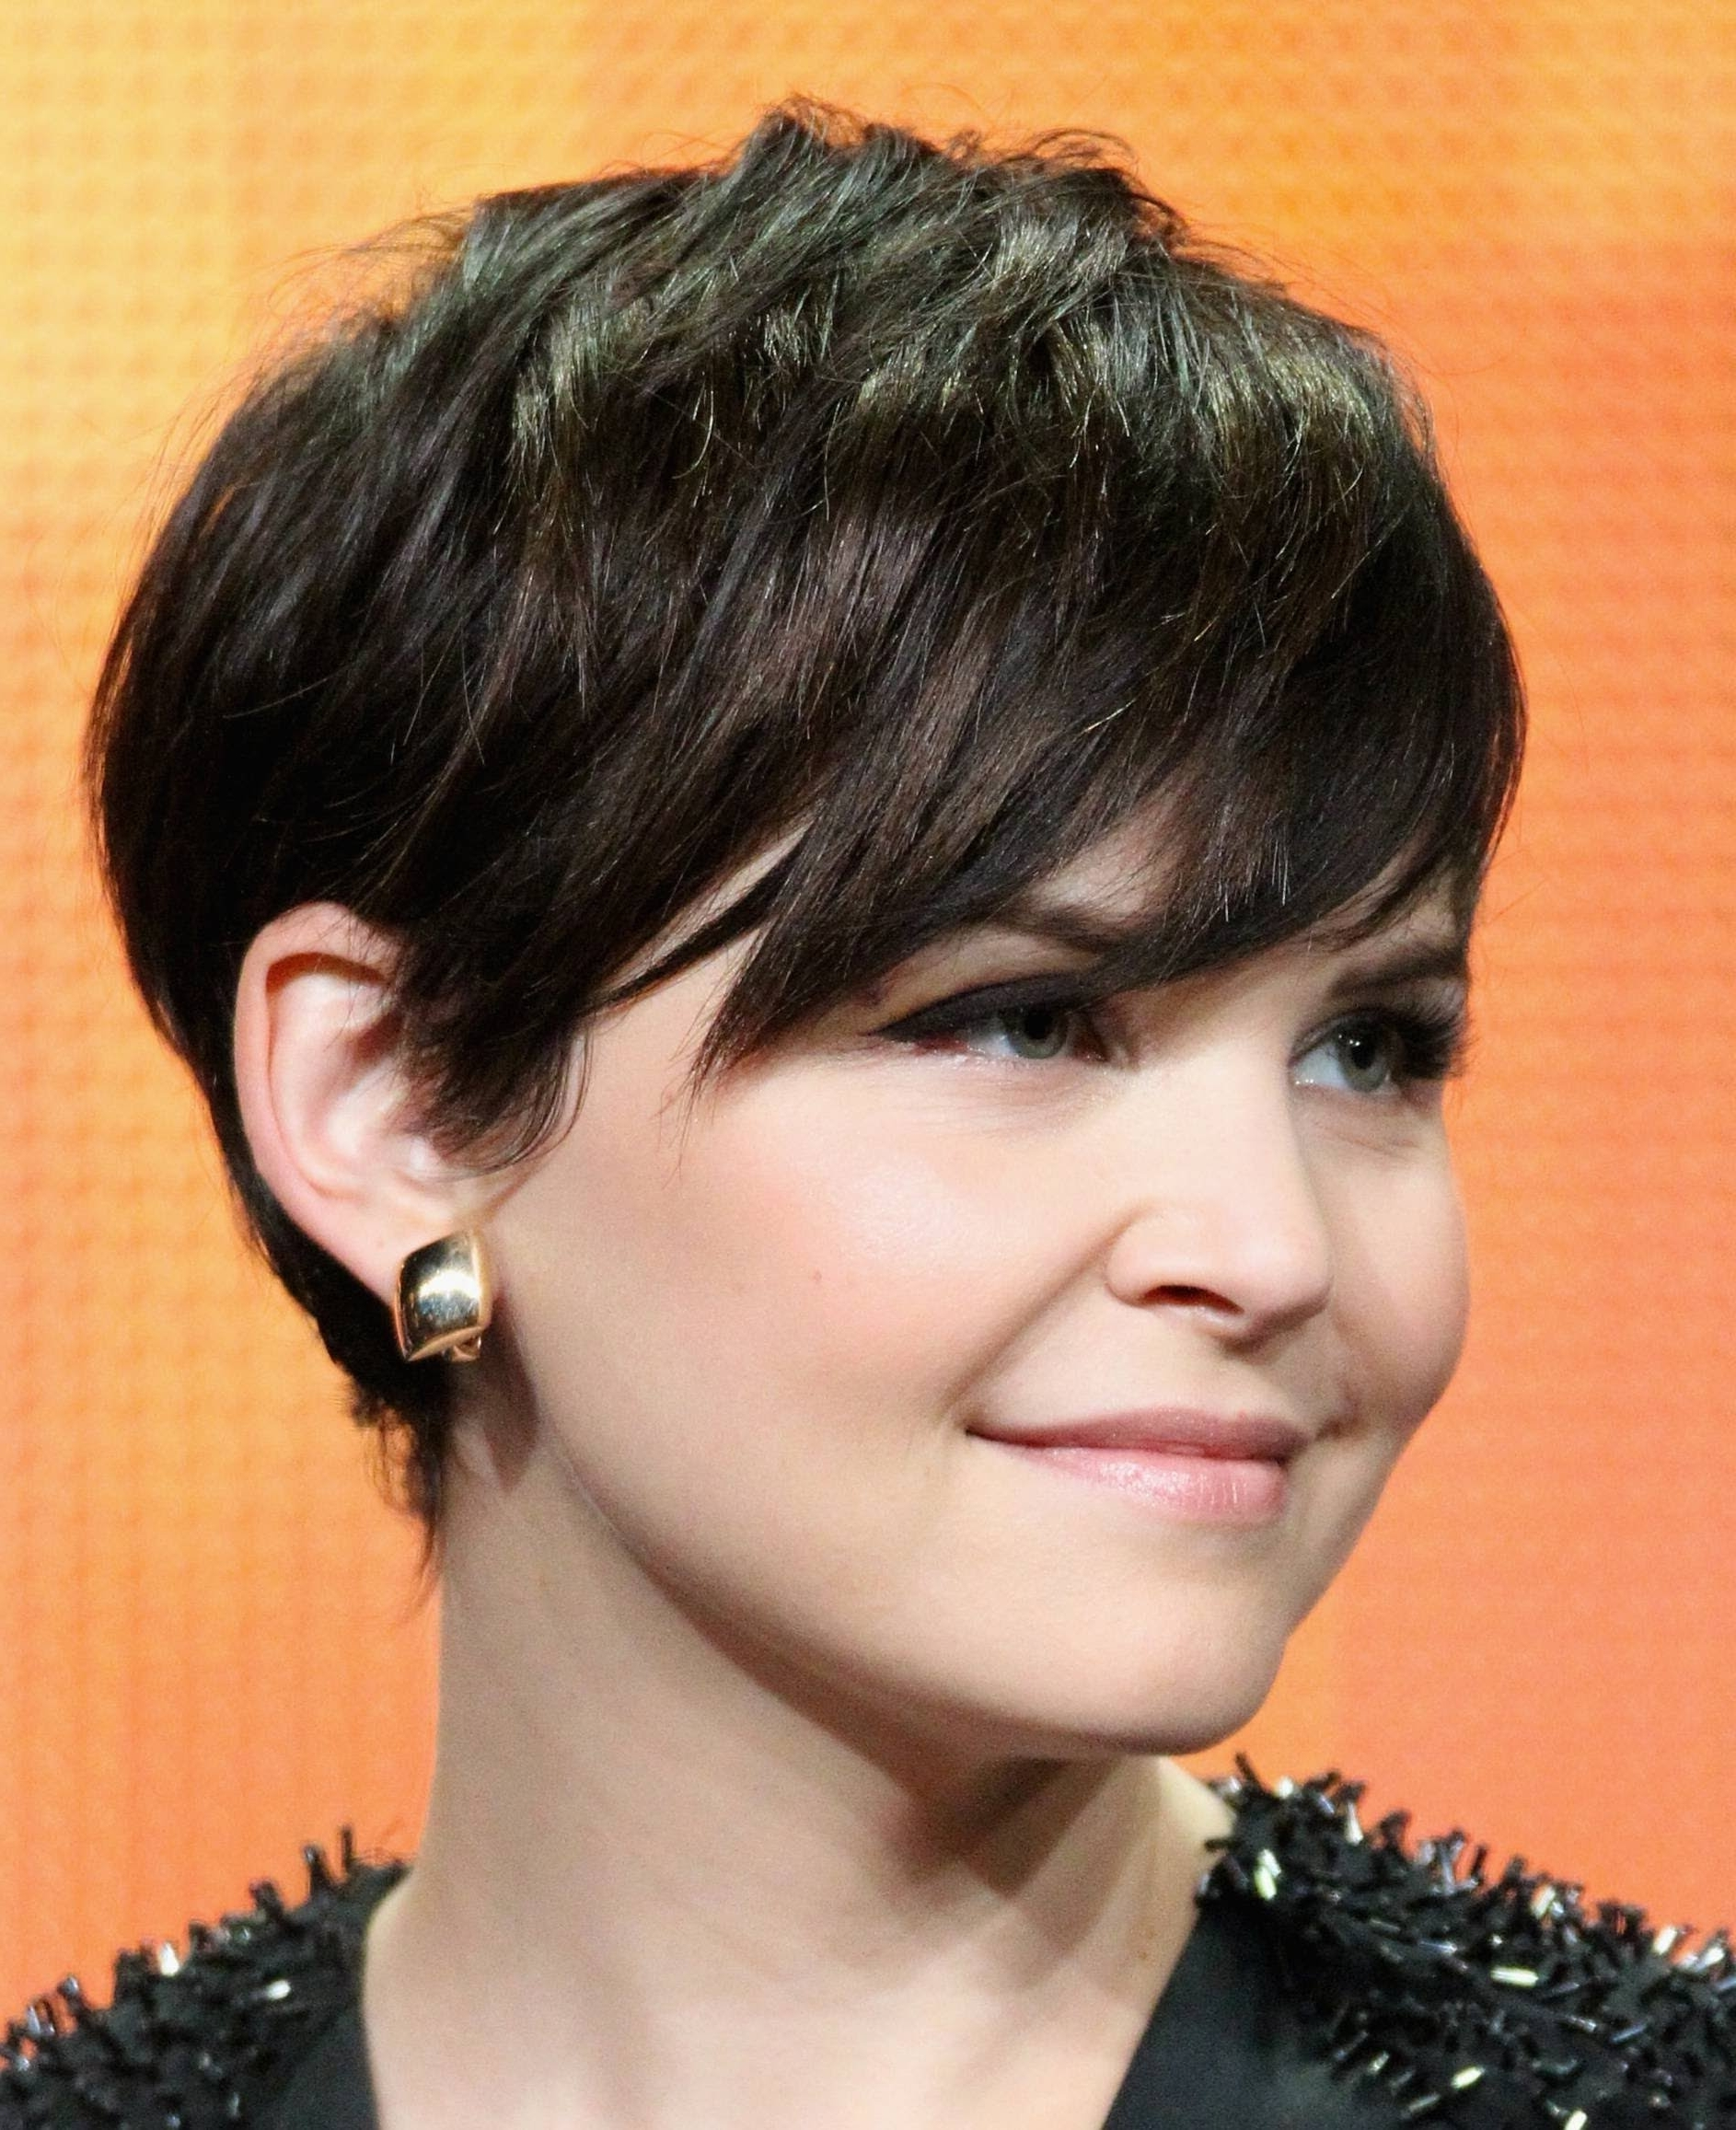 Ginnifer Goodwin Pixie Haircut Tutorial | The Salon Guy – Youtube Regarding Most Recently Short Pixie Hairstyles From The Back (Gallery 12 of 15)